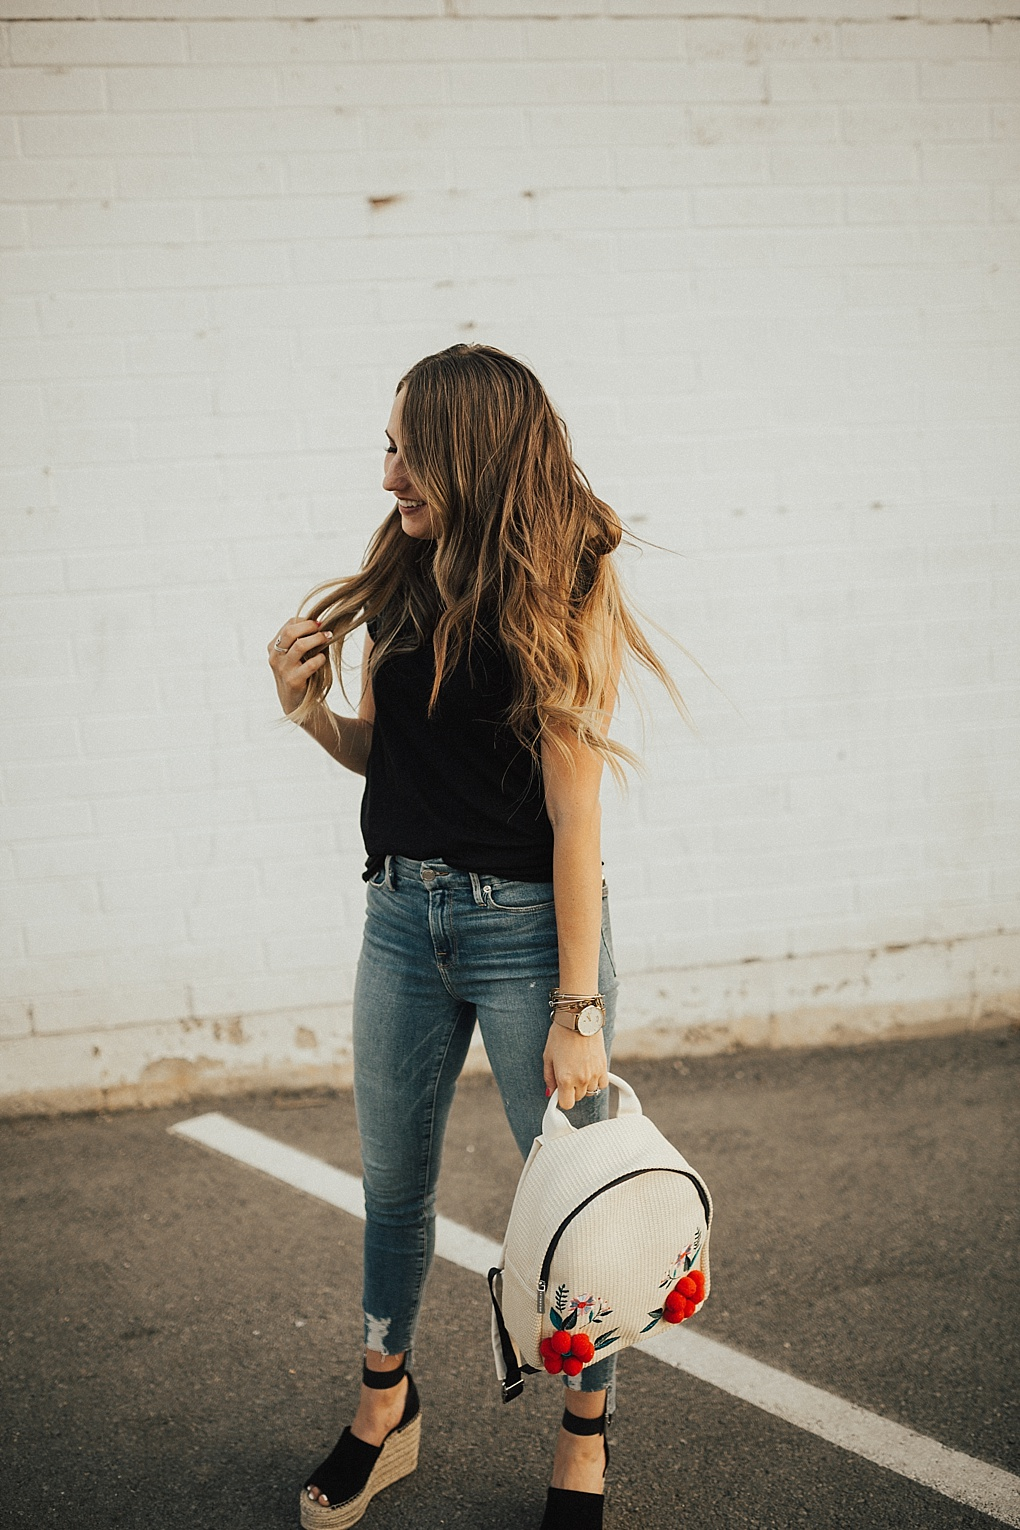 Must Have Accessories to Add To Every Outfit by Utah fashion blogger Dani Marie